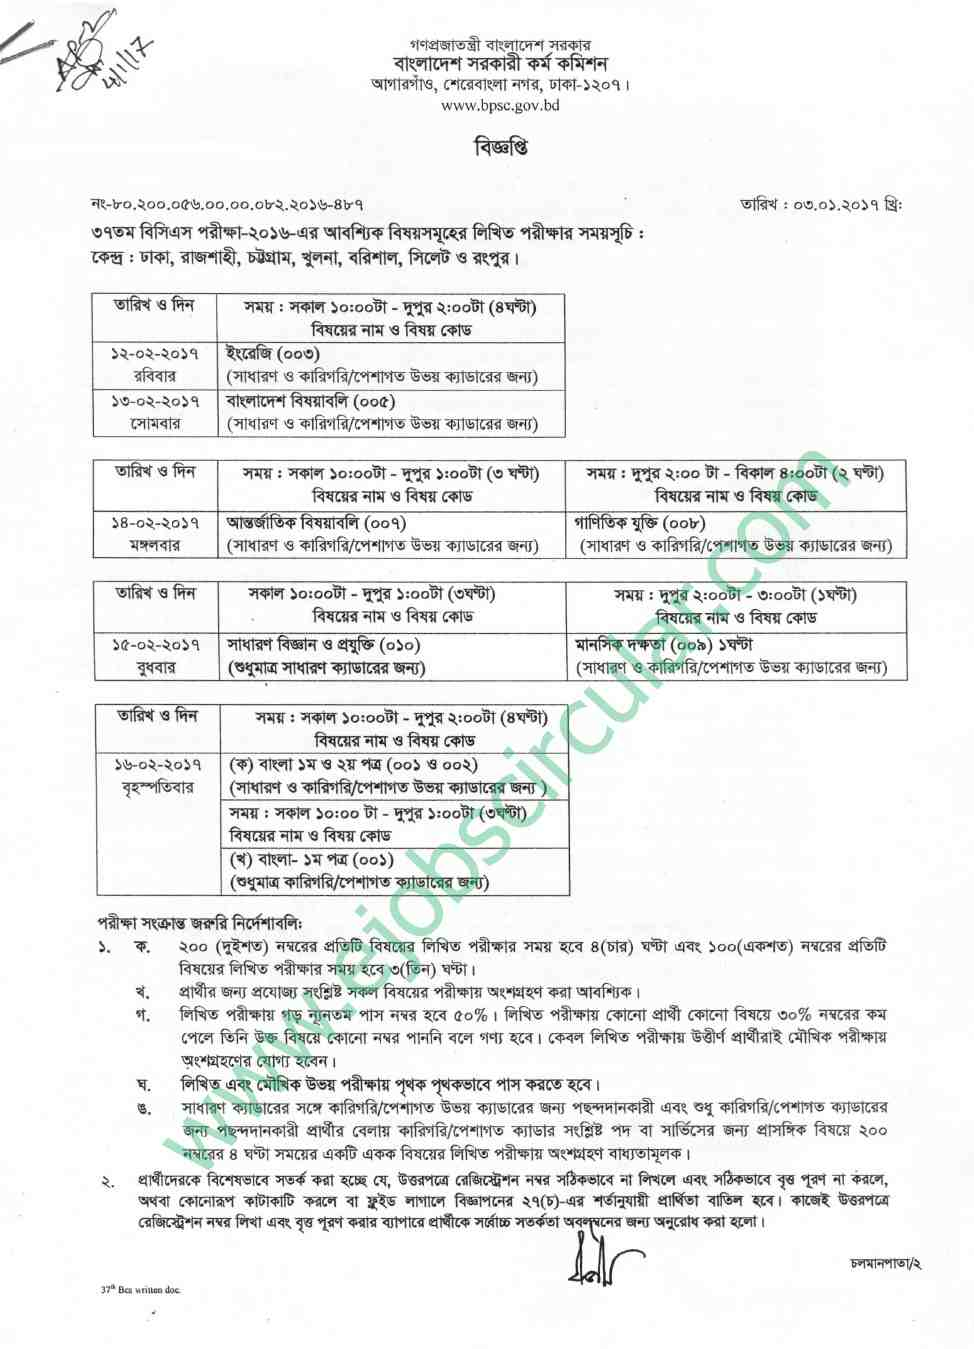 37th BCS Written Exam Routine